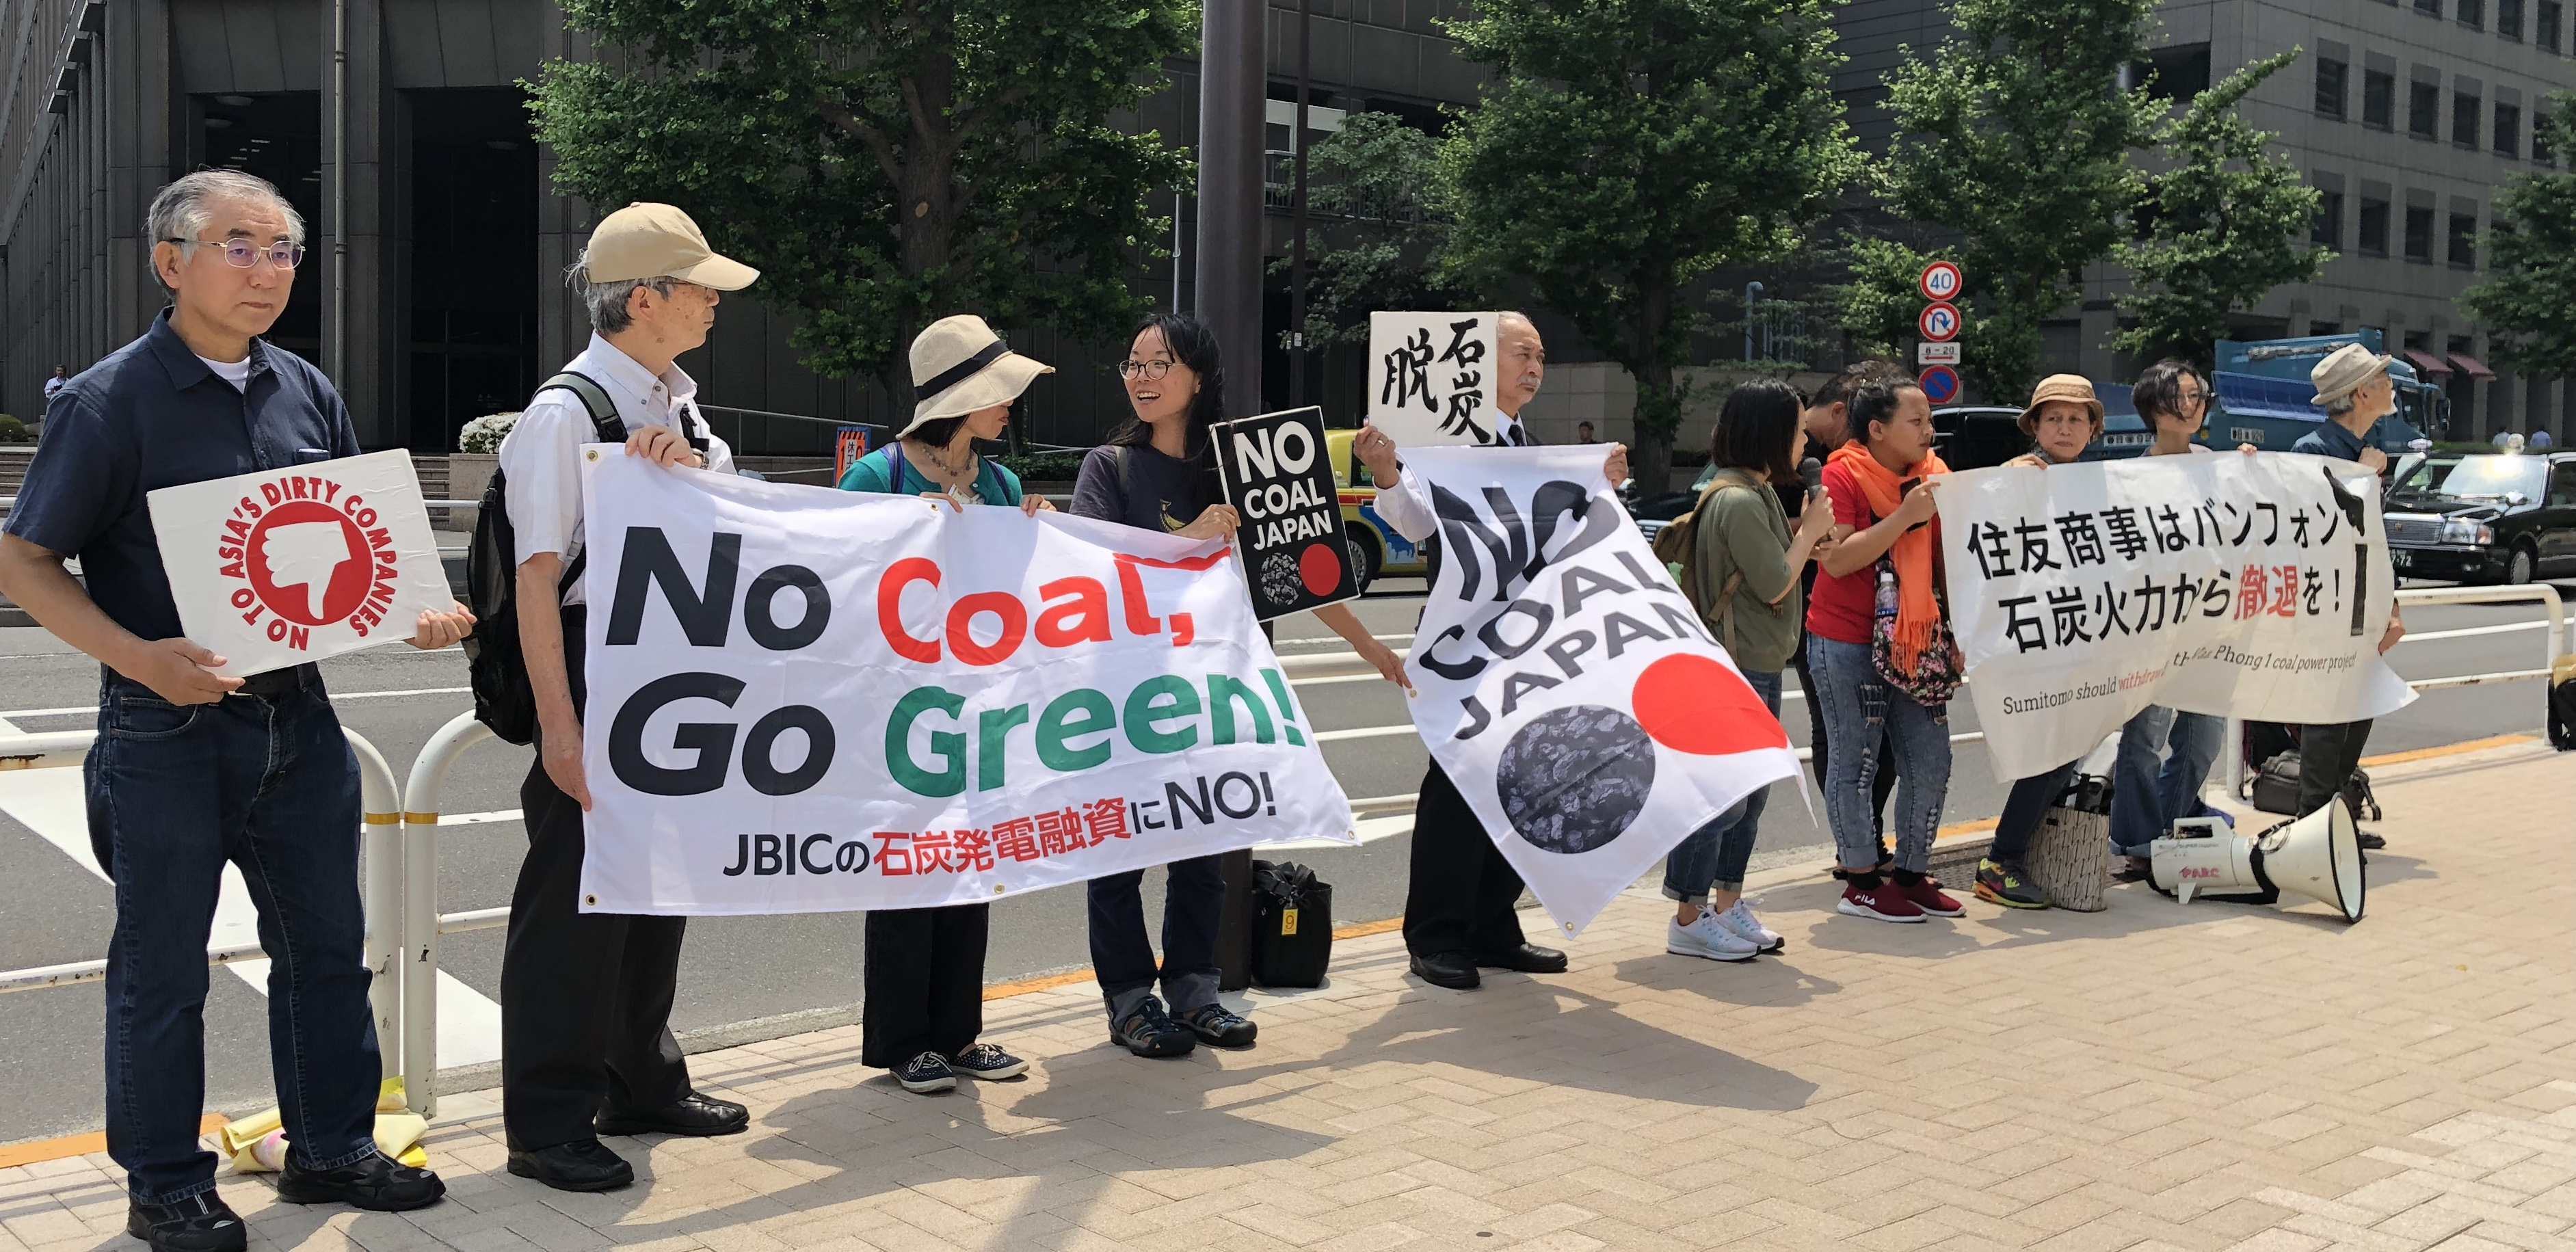 NGO Joint Statement on Sumitomo Corporation's Coal Policy